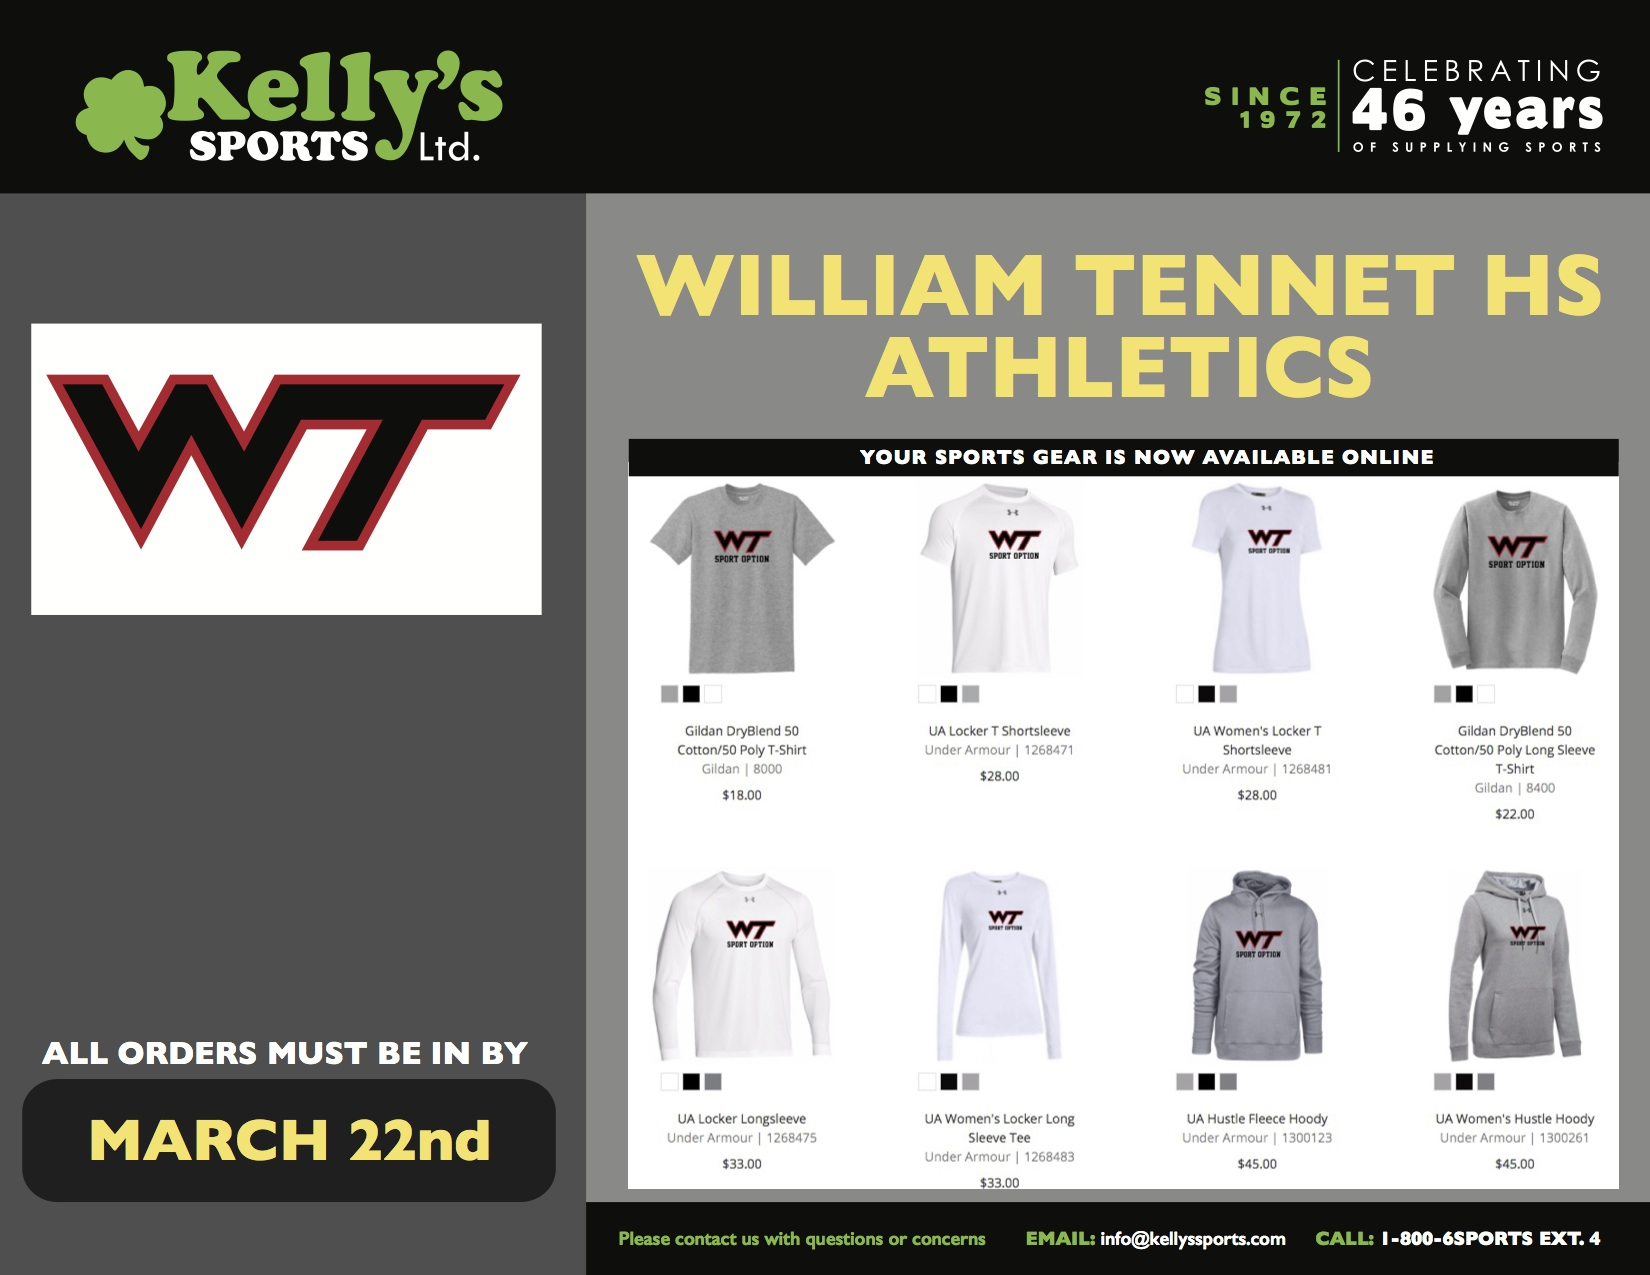 Order Your WT Spring Athletics Gear by March 22